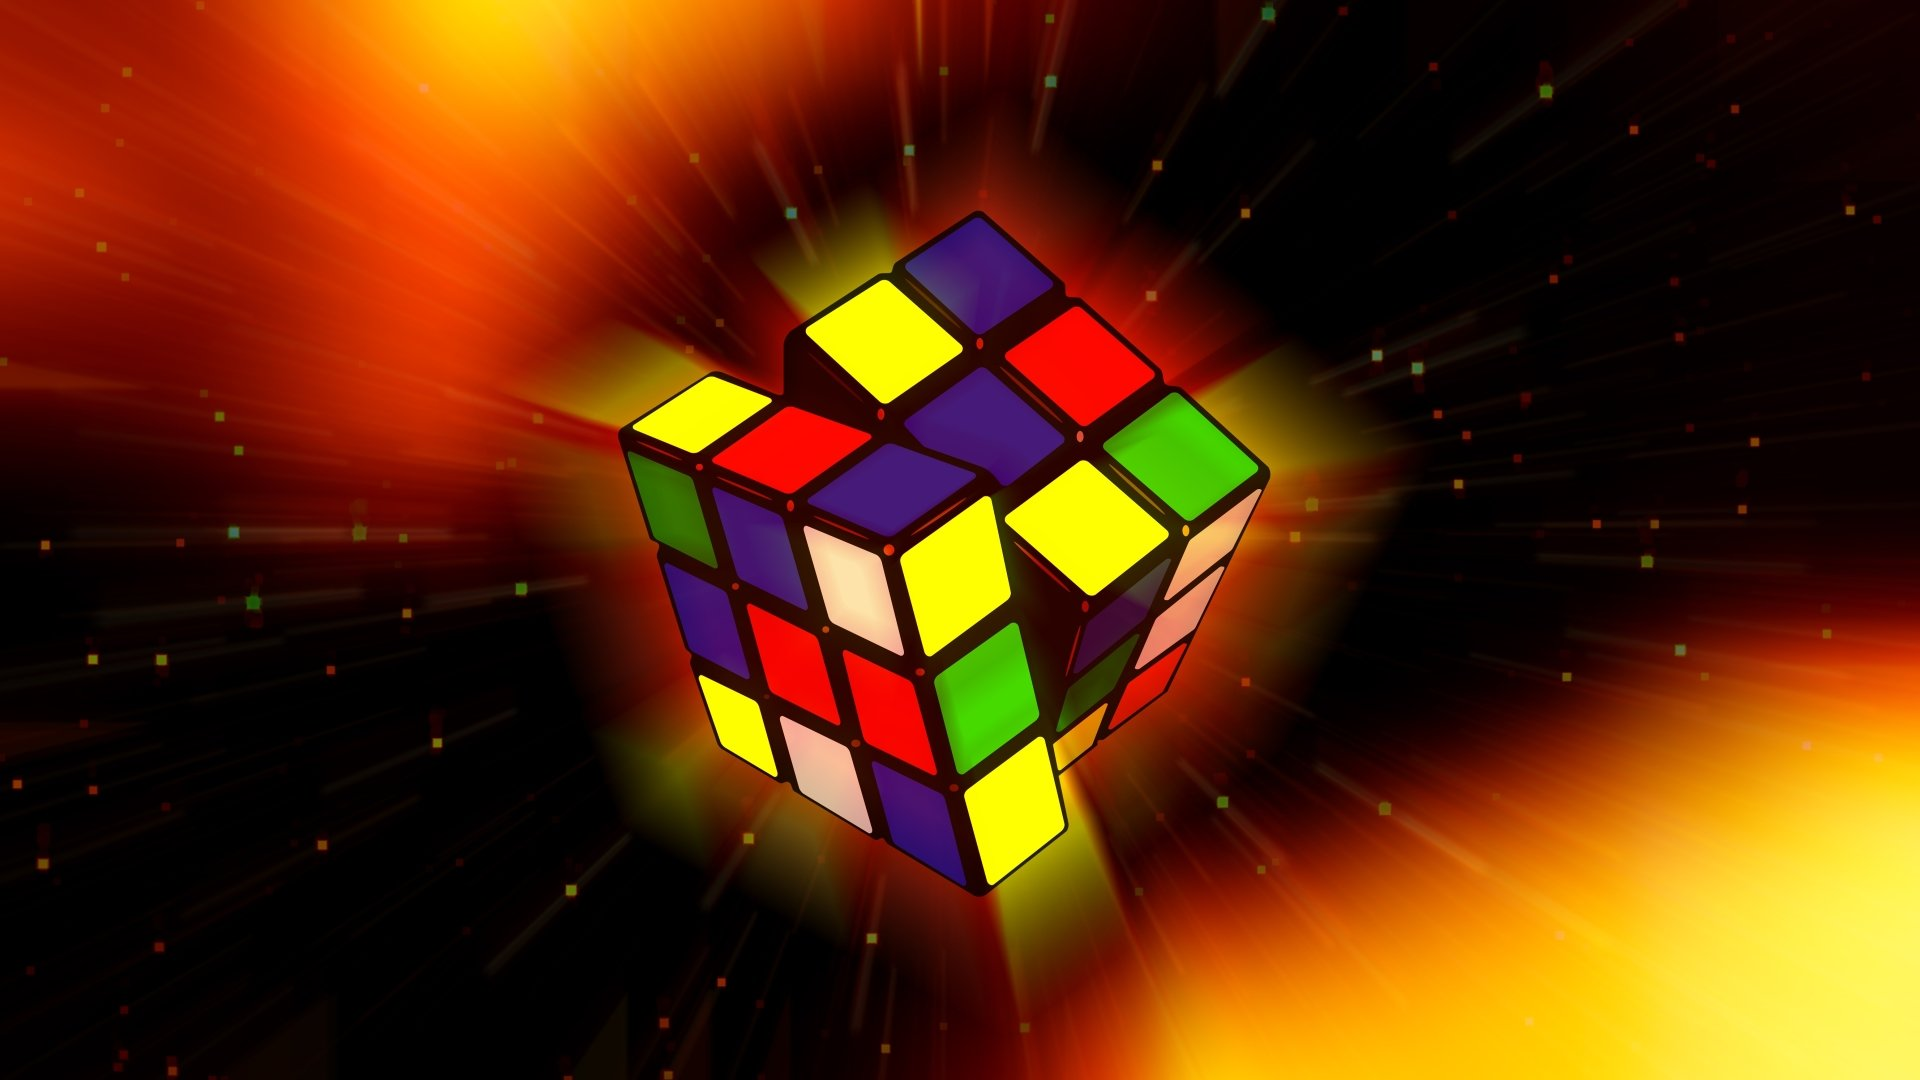 Game - Rubik's Cube  Game Colors Colorful Artistic Wallpaper